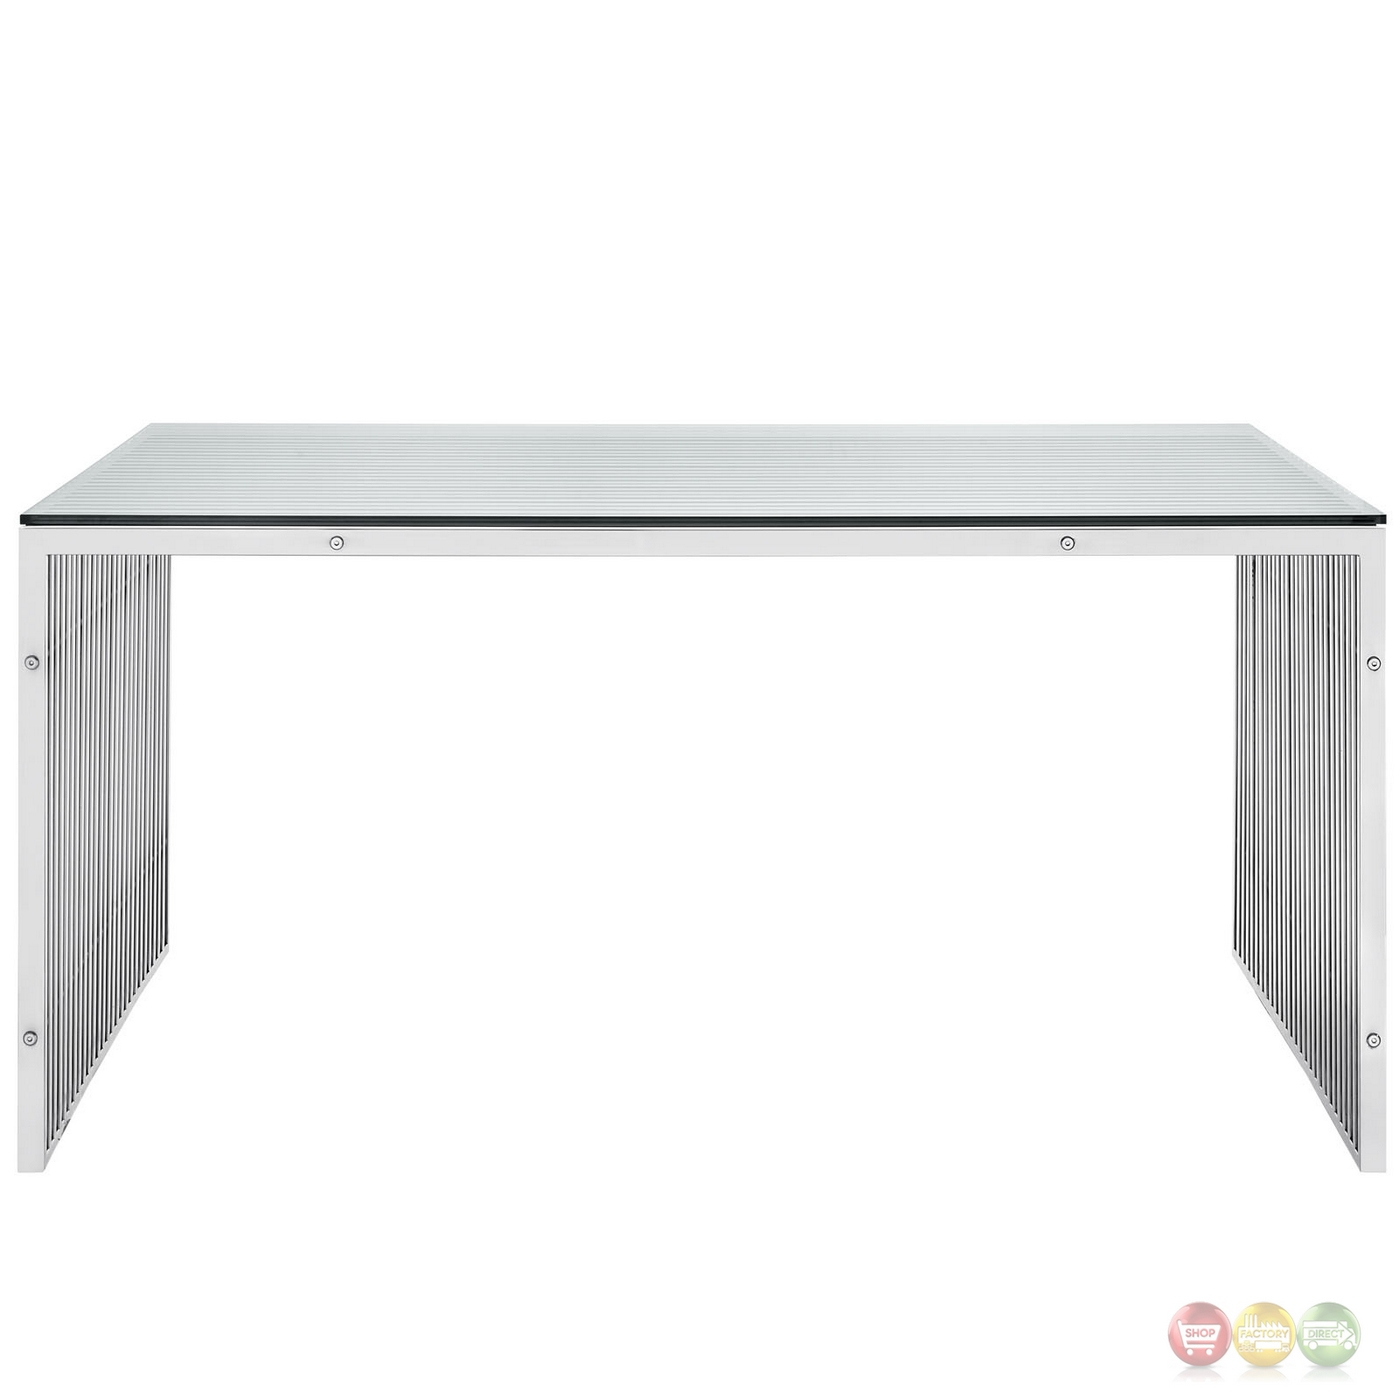 Stainless Steel Dining Table With Glass Top Contemporary  : gridiron modernistic stainless steel solid frame dining table with glass top silver 4 from www.amlibgroup.com size 1400 x 1400 jpeg 164kB